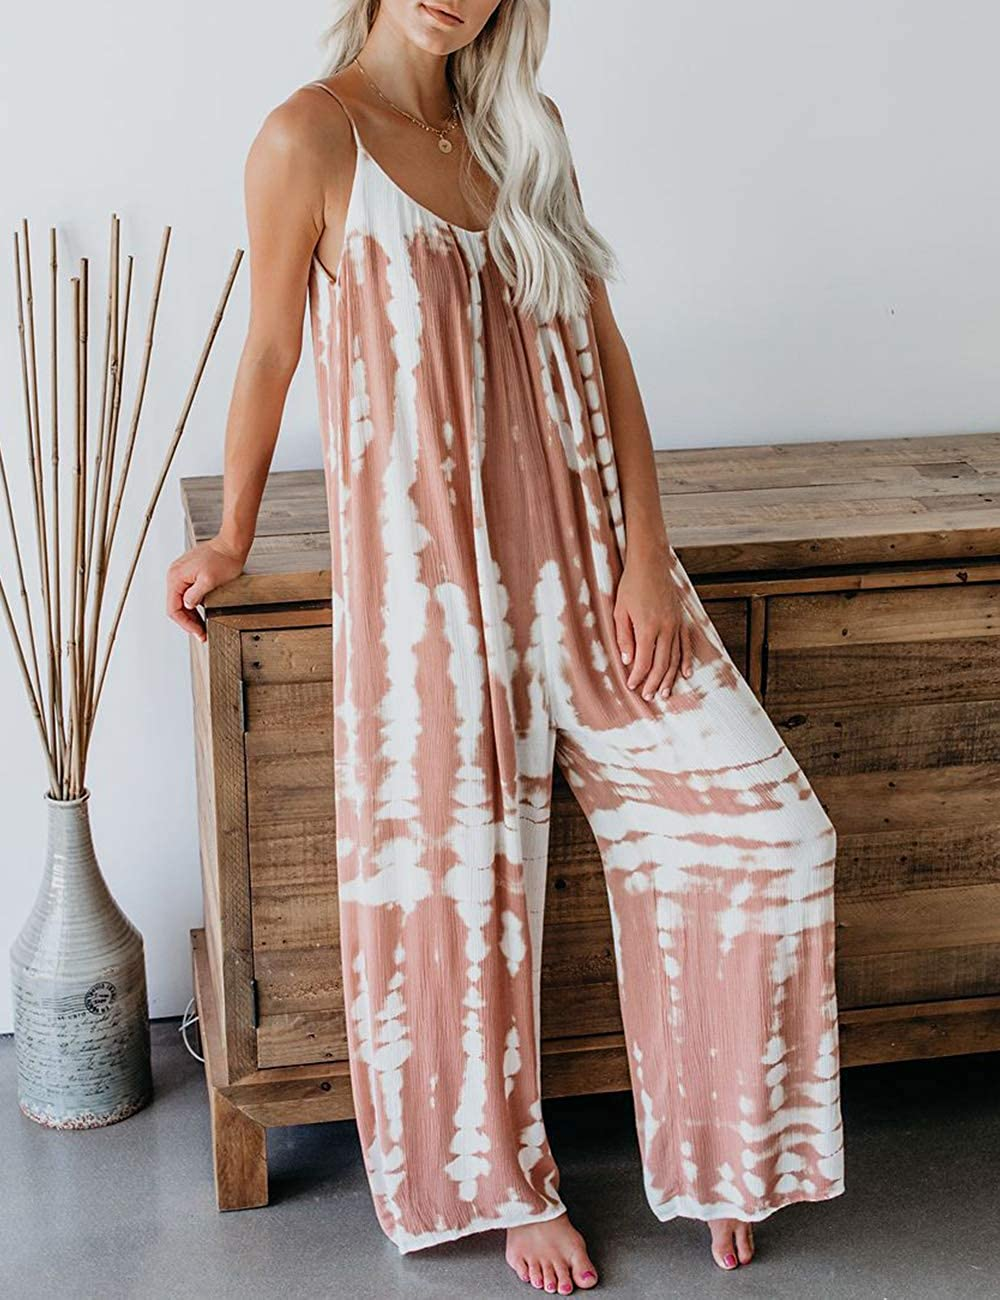 CAIYING Womens 2020 Casual Spaghetti Tie Dye Jumpsuits Baggy Wide Leg Long Pant Romper